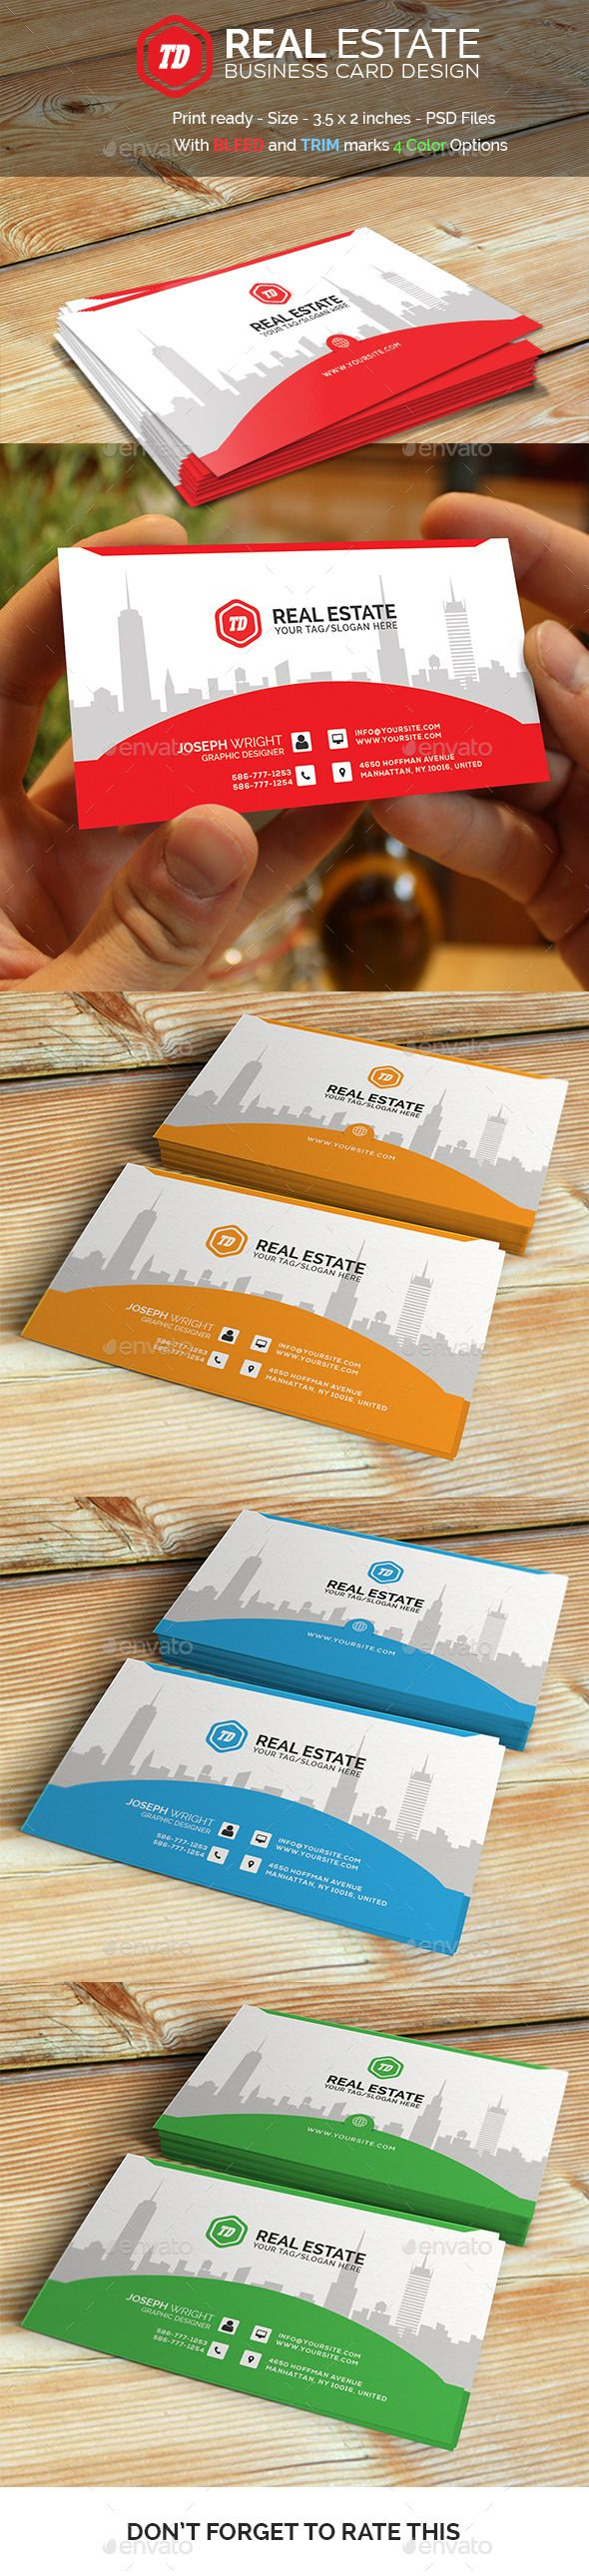 Best 25 real estate business cards ideas on pinterest realtor best 25 real estate business cards ideas on pinterest realtor business cards keller williams business cards and real clear markets magicingreecefo Images